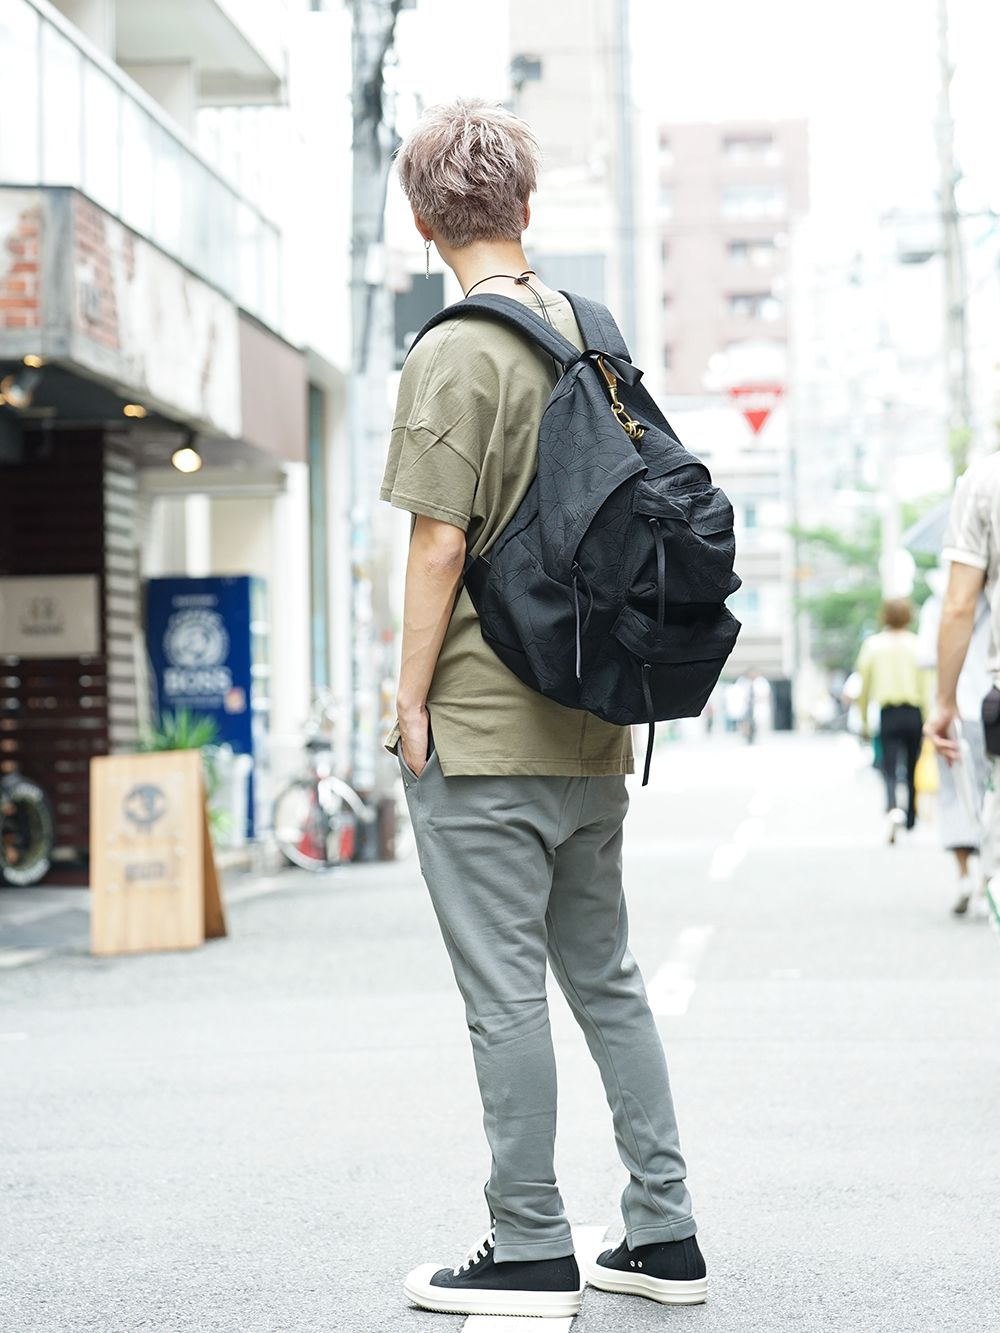 DIET BUTCHER SLIM SKIN 19AW Earth color Styling - 1-003